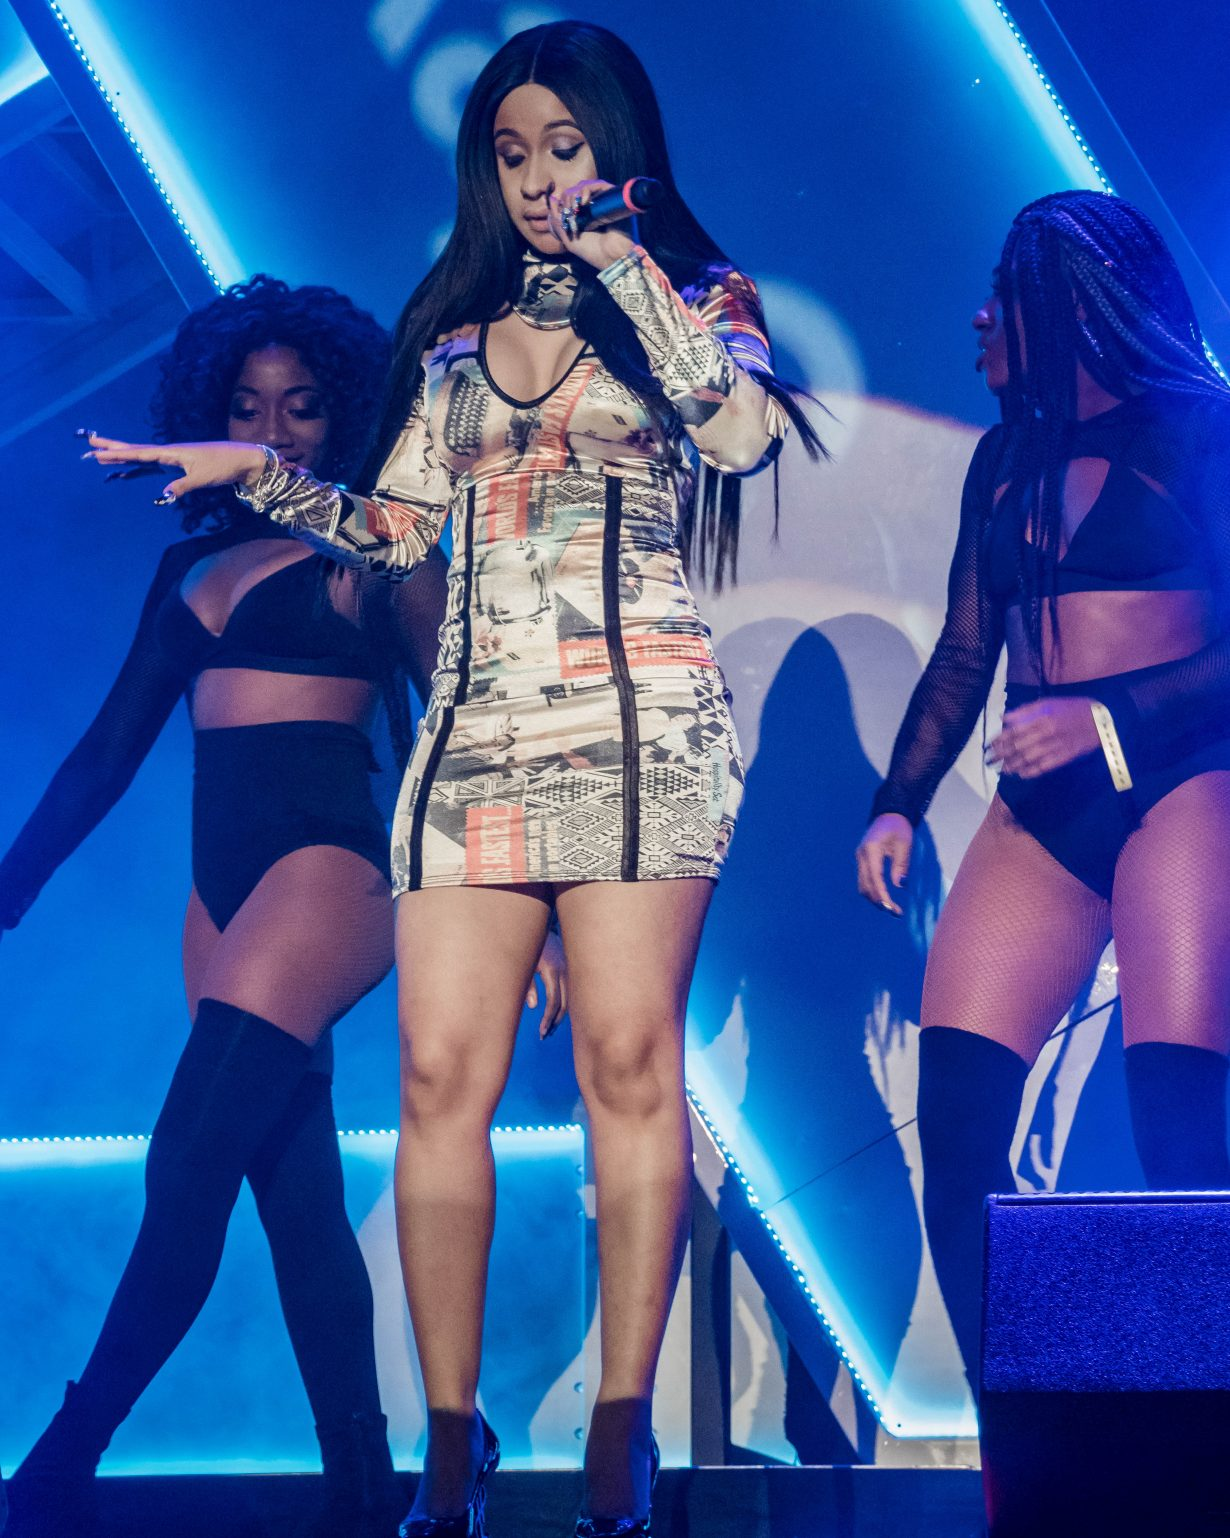 Cardi B. RapCaviar Aragon Ballroom 2017 Chicago Il. Photo by Kevin Baker 1230x1538 RapCaviar Sets Chicago On Fire with Lil Uzi Vert, Playboi Carti, Cardi B, DJ Drama and More